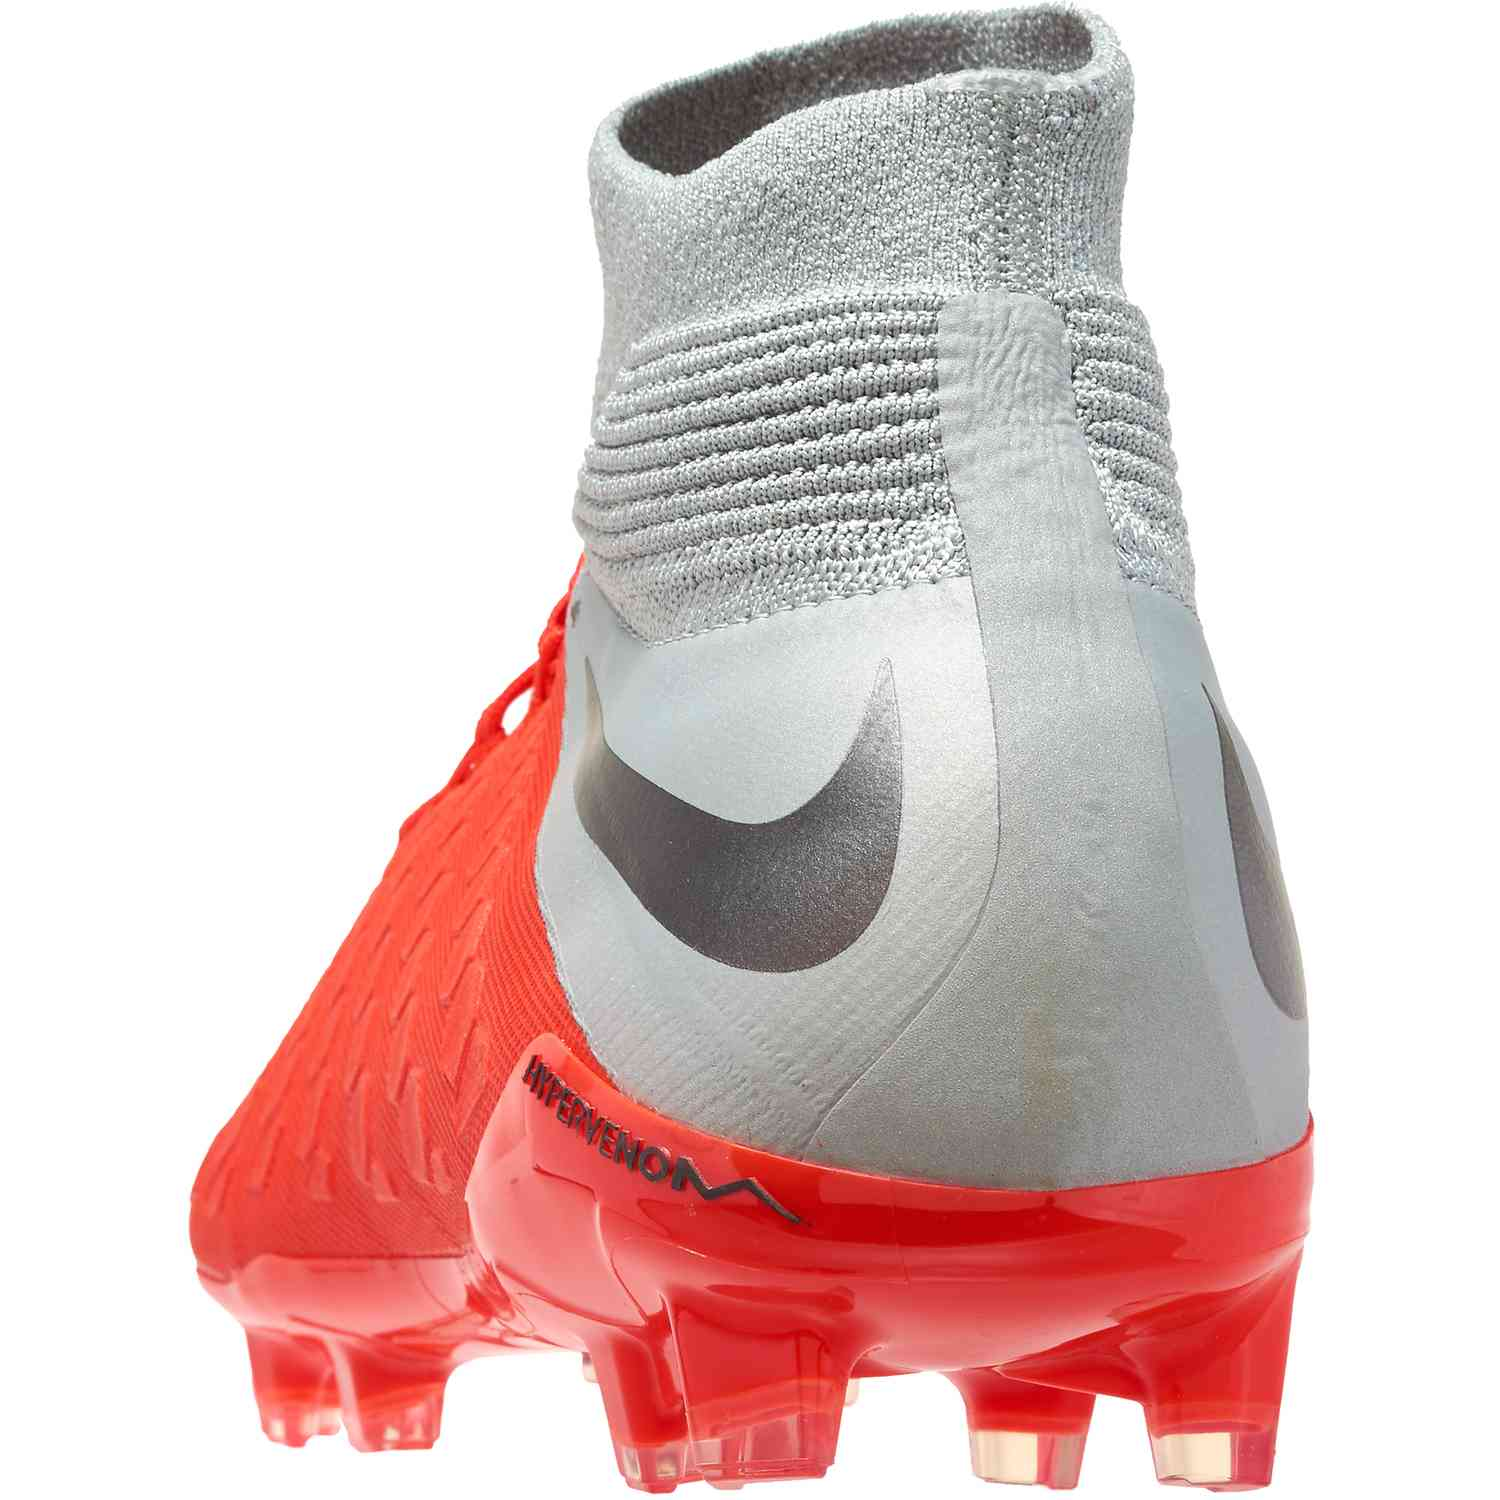 newest da9b8 6729b Nike Hypervenom Phantom 3 Elite DF FG - Youth - Light Crimson/Metallic Dark  Grey/Wolf Grey - Soccer Master